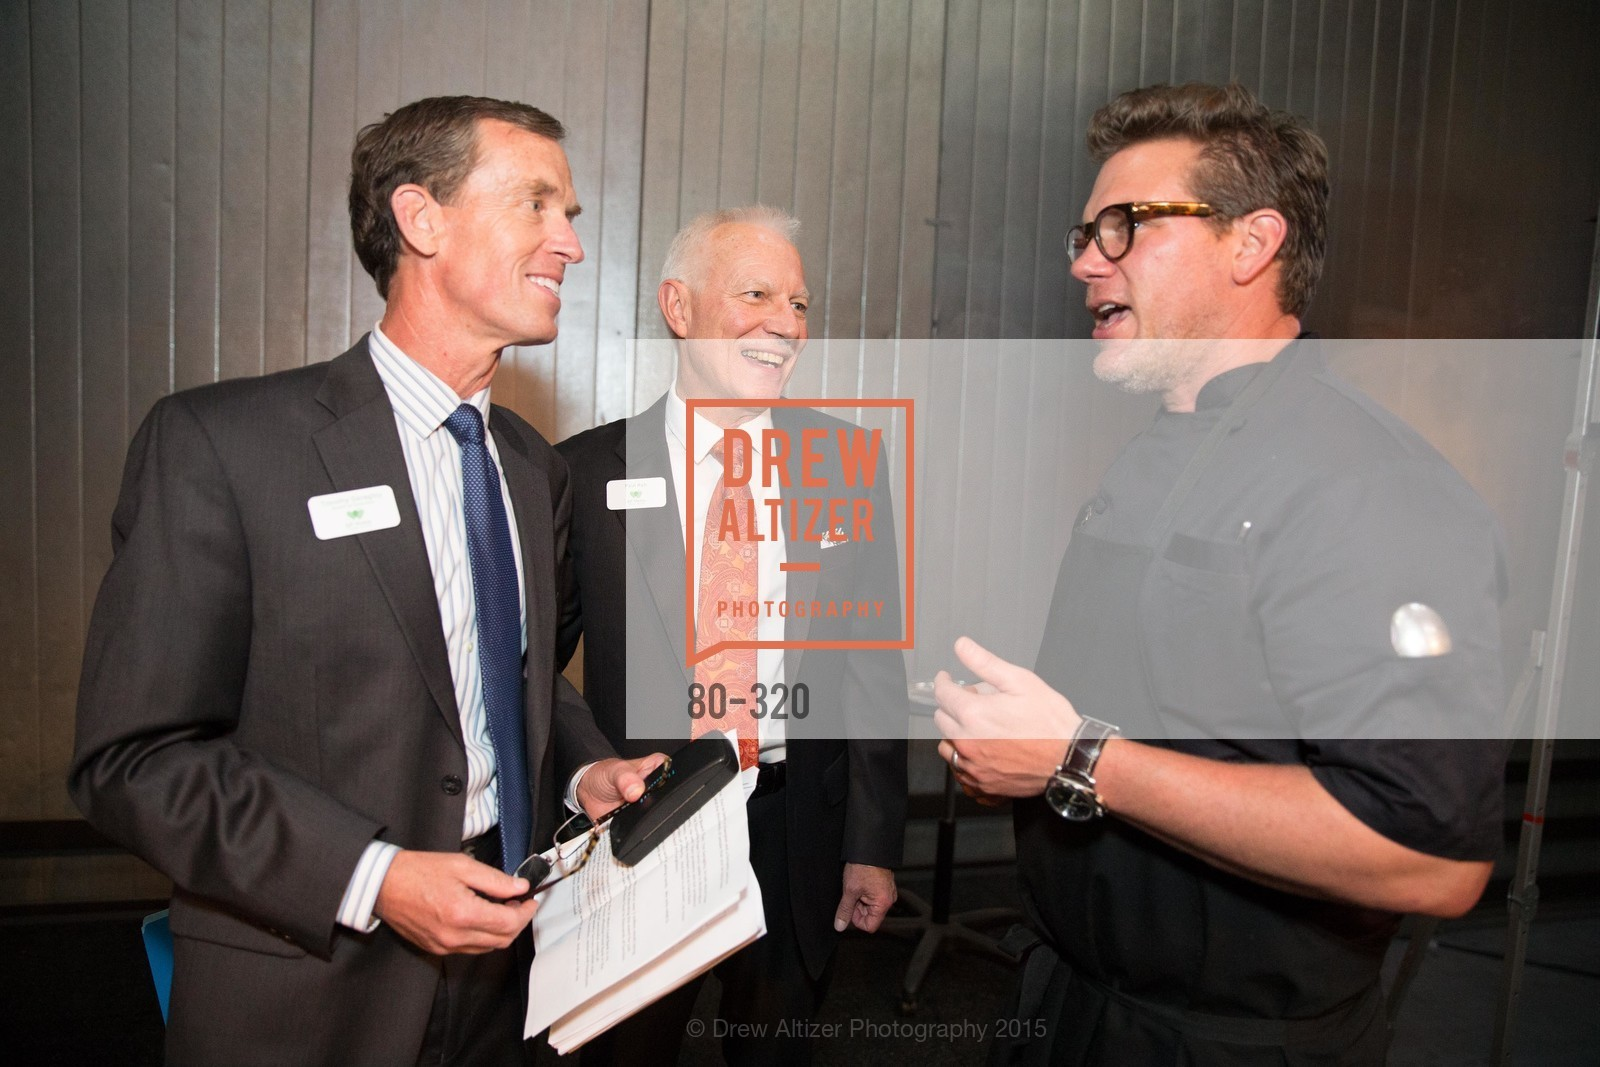 Tim Geraghty, Paul Ash, Tyler Florence, SF - Marin Food Bank Presents ONE BIG TABLE, SF- Marin Food Bank. 900 Pennsylvania Ave, September 26th, 2015,Drew Altizer, Drew Altizer Photography, full-service event agency, private events, San Francisco photographer, photographer California